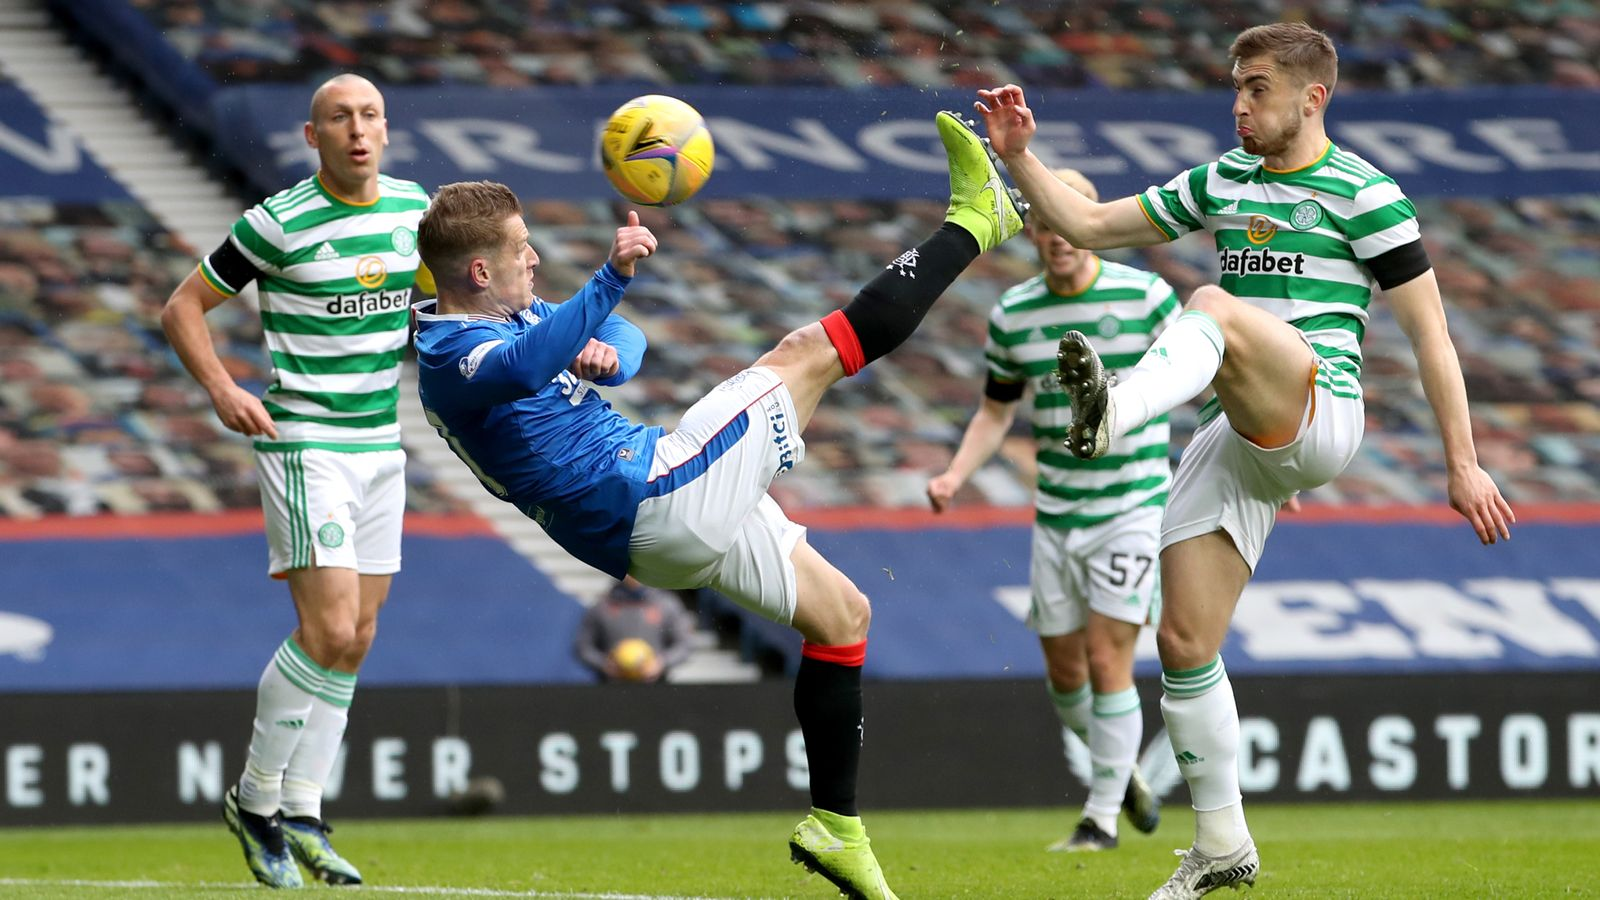 European Super League: Would Celtic & Rangers join breakaway? What does it mean for Scottish football?